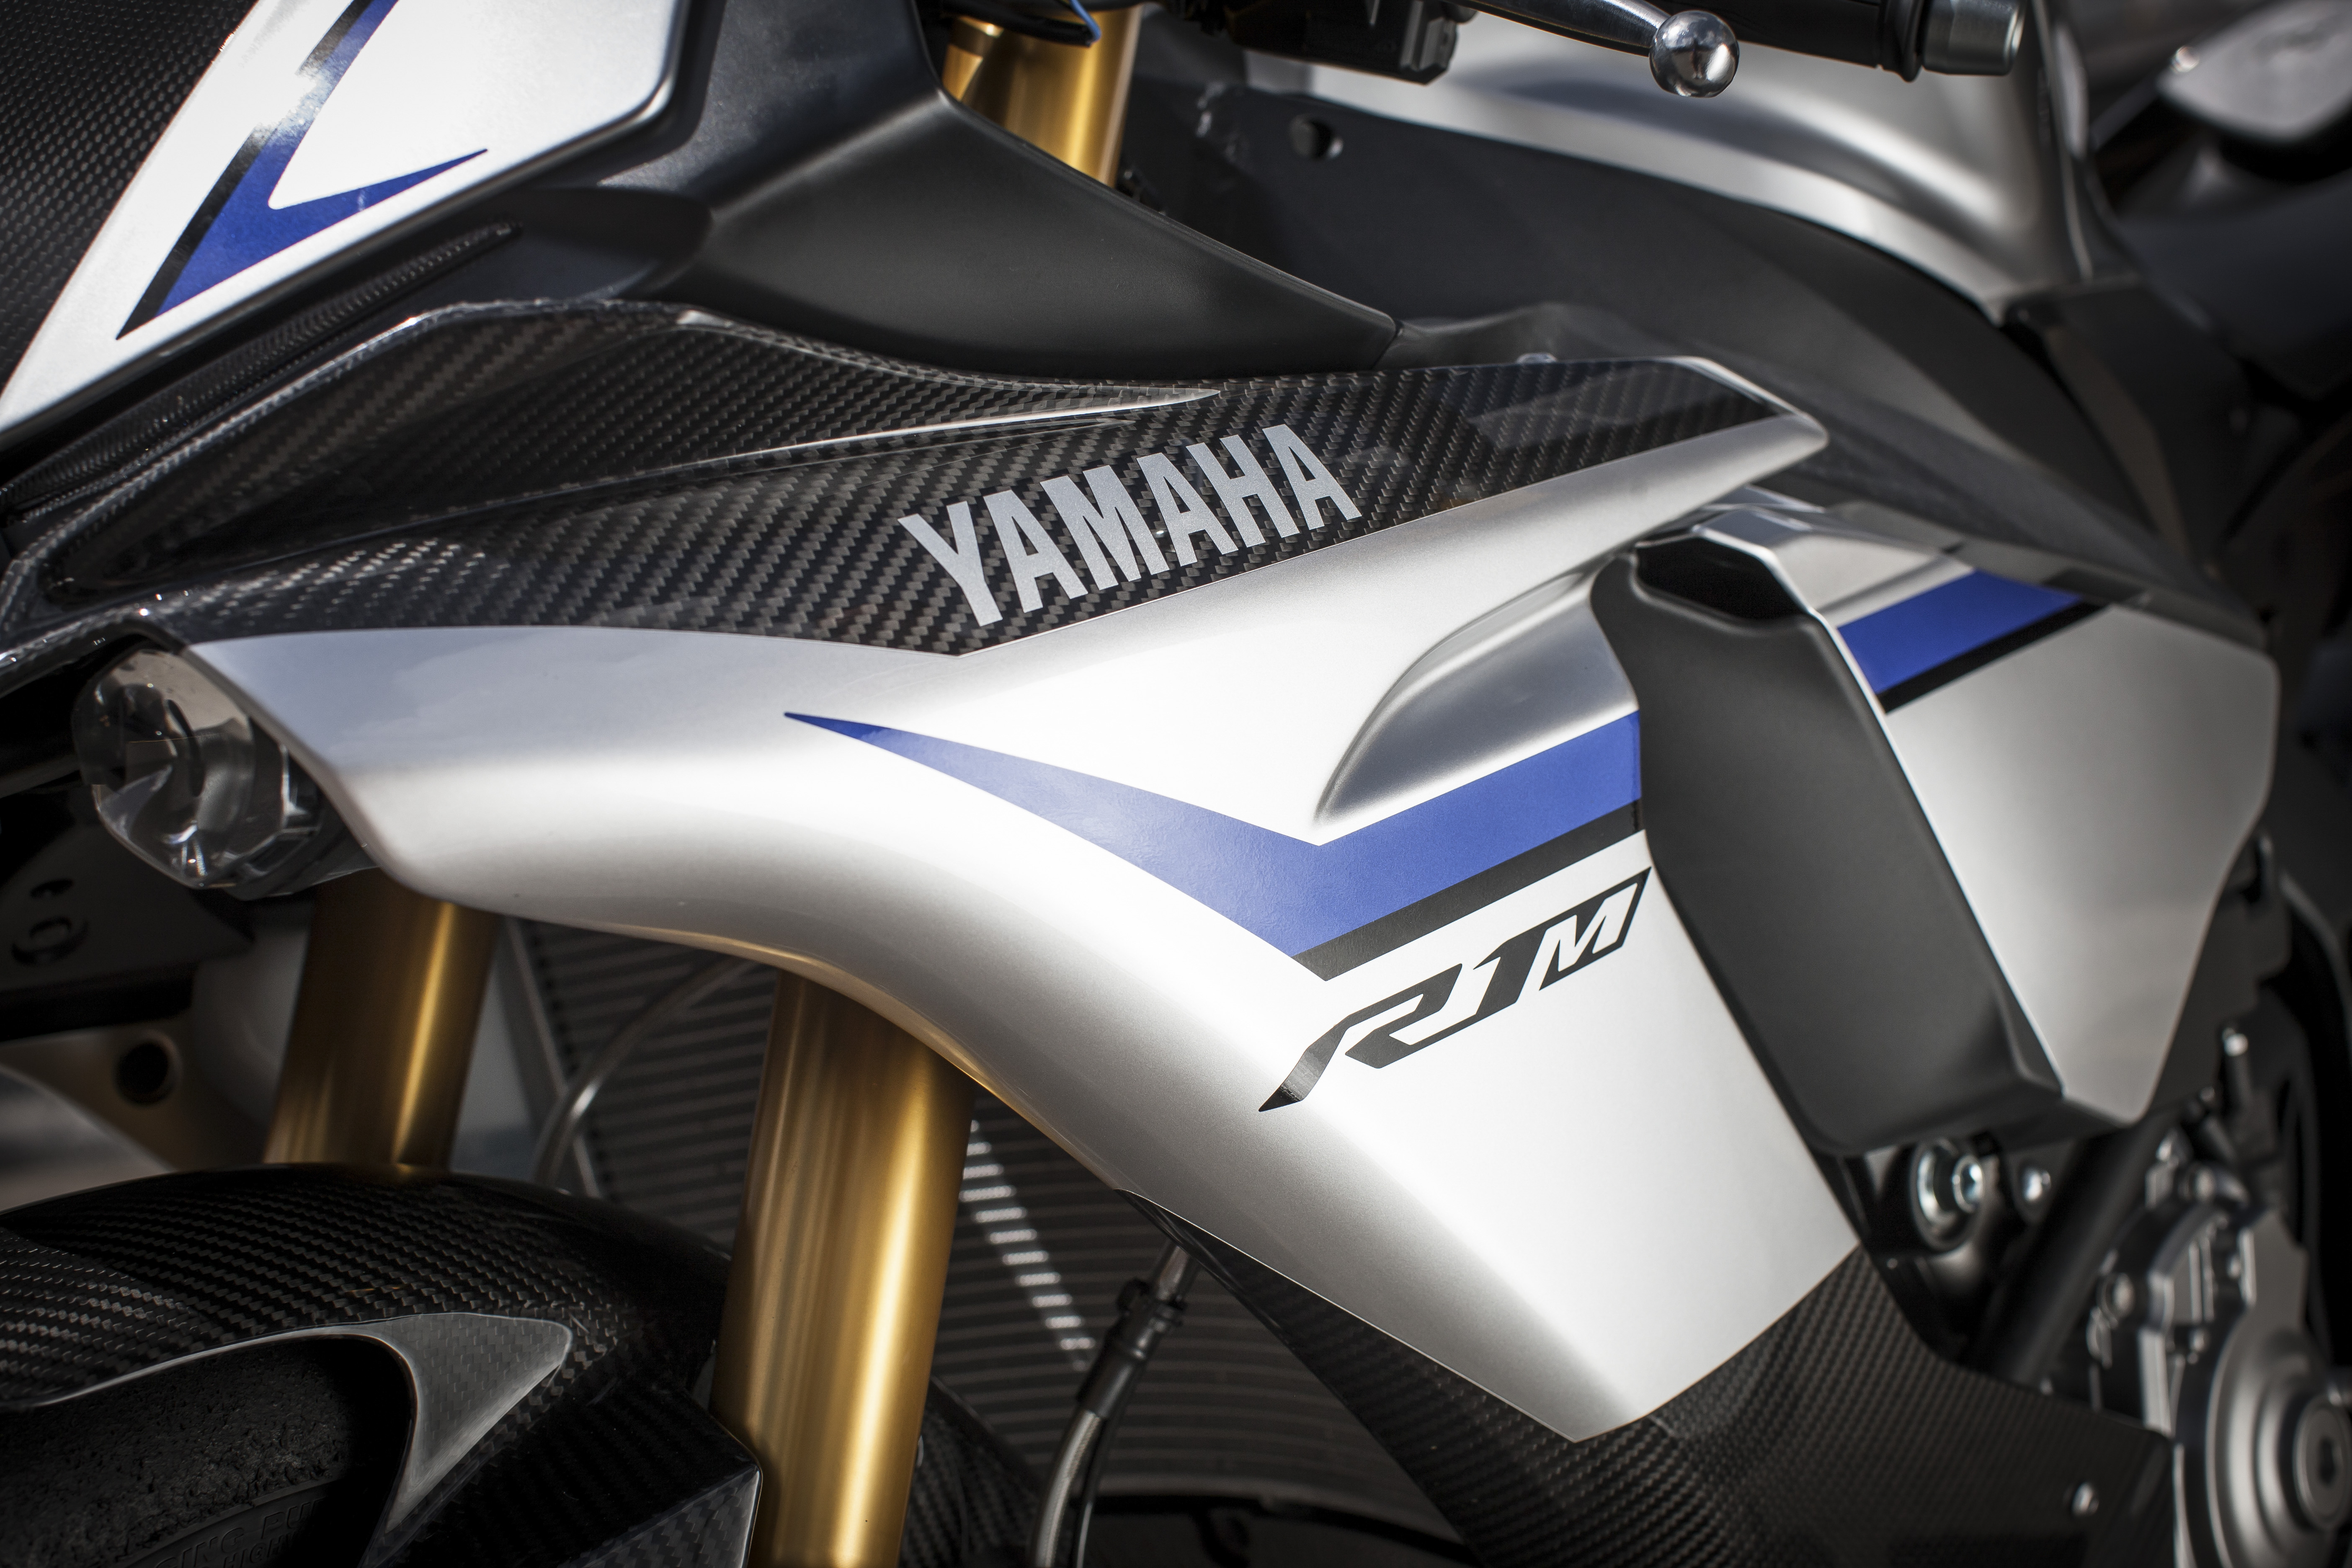 First ride: Yamaha R1 and R1M review | Visordown